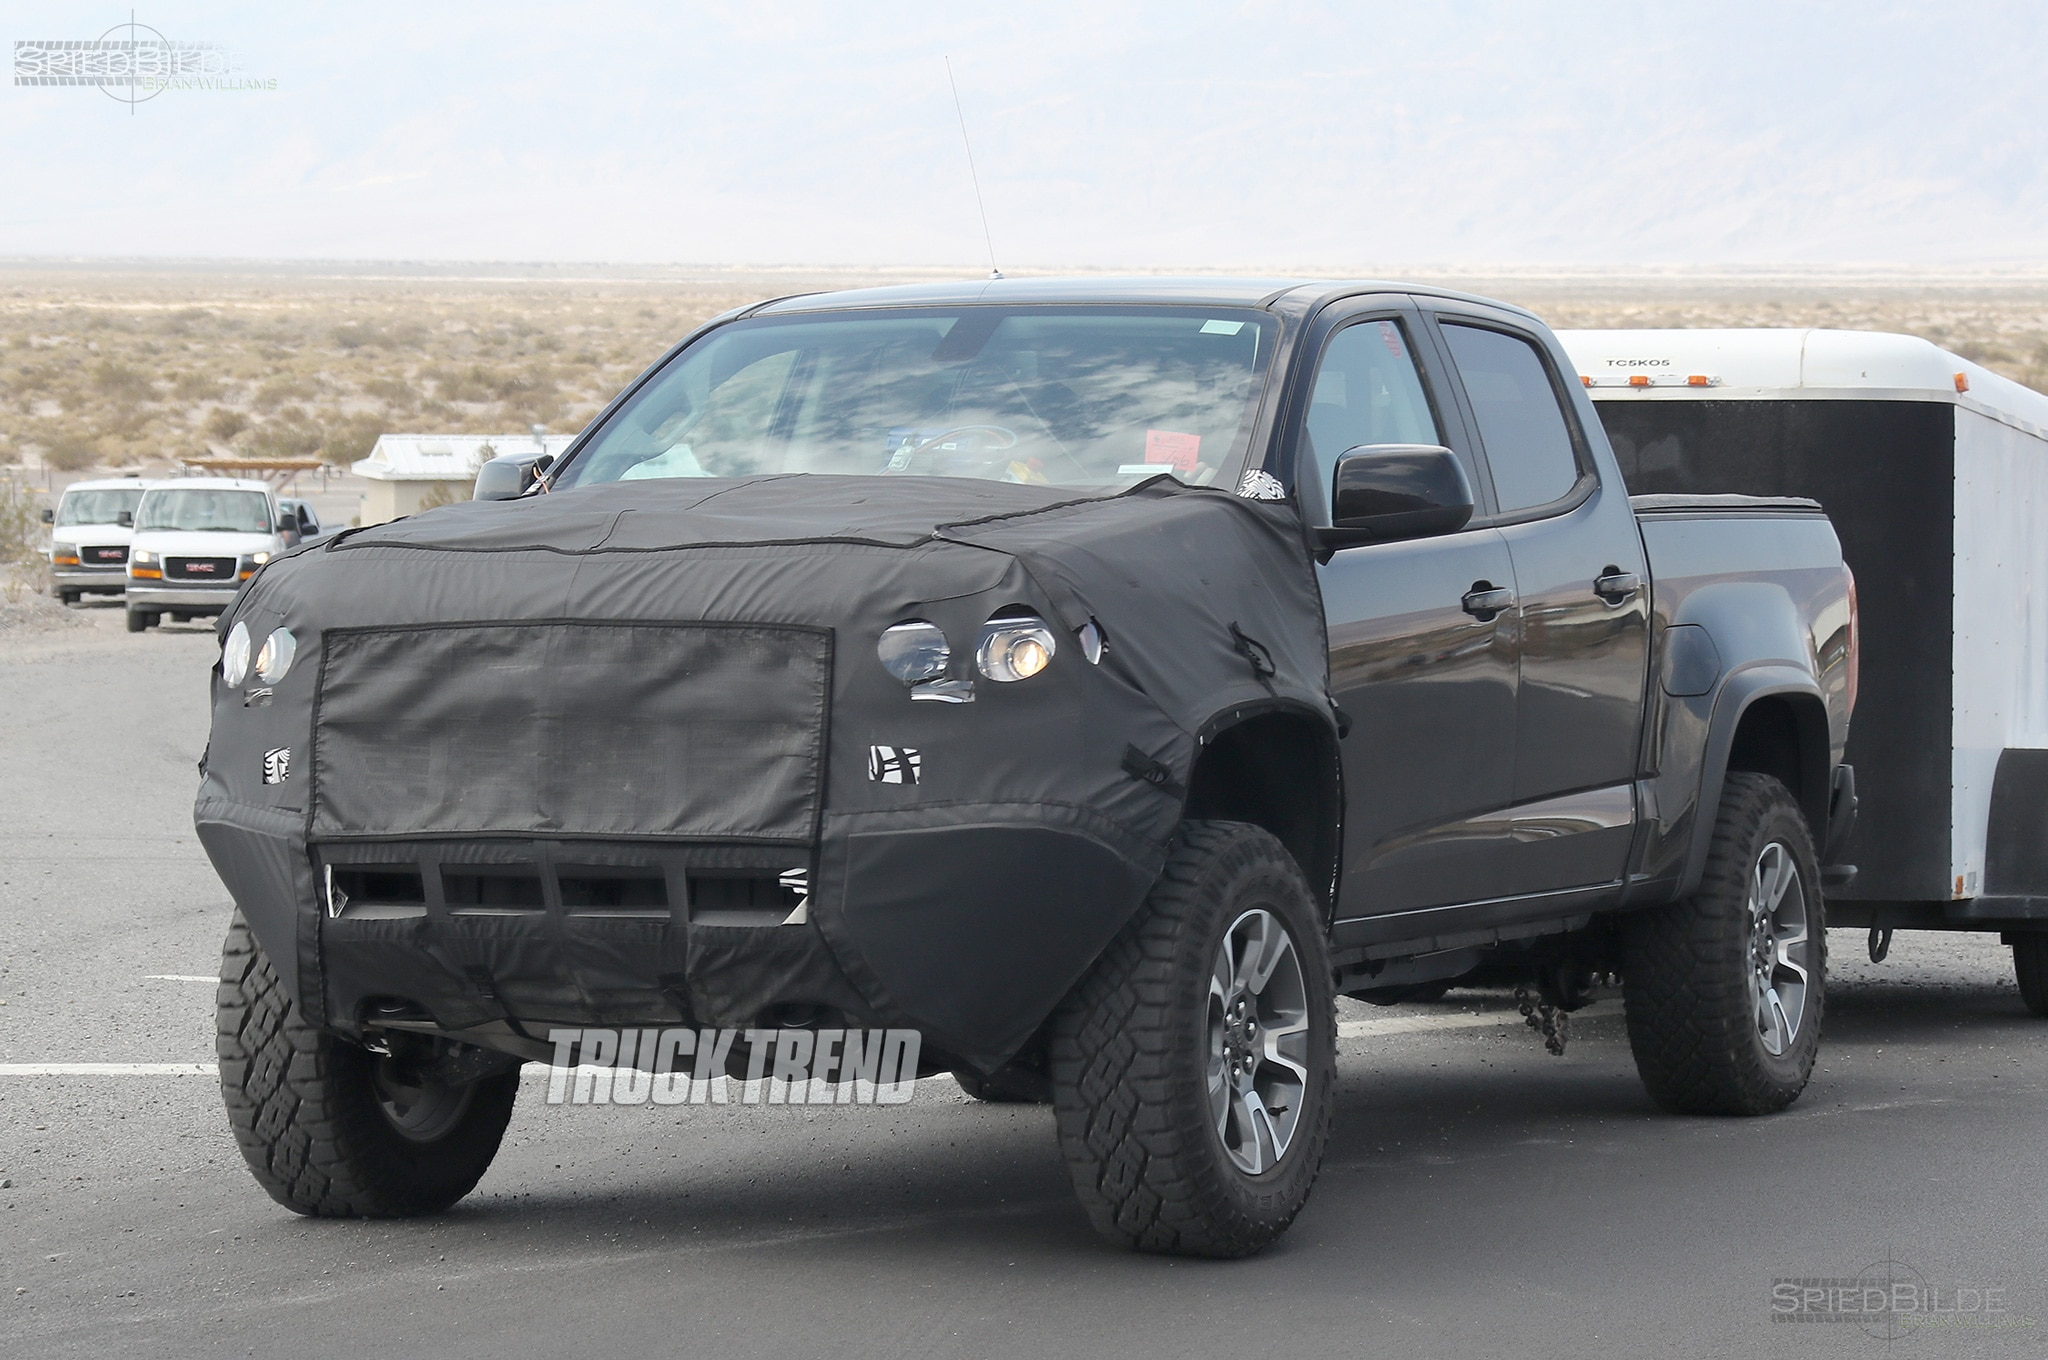 2018 chevrolet colorad zr2 front quarter with trailer